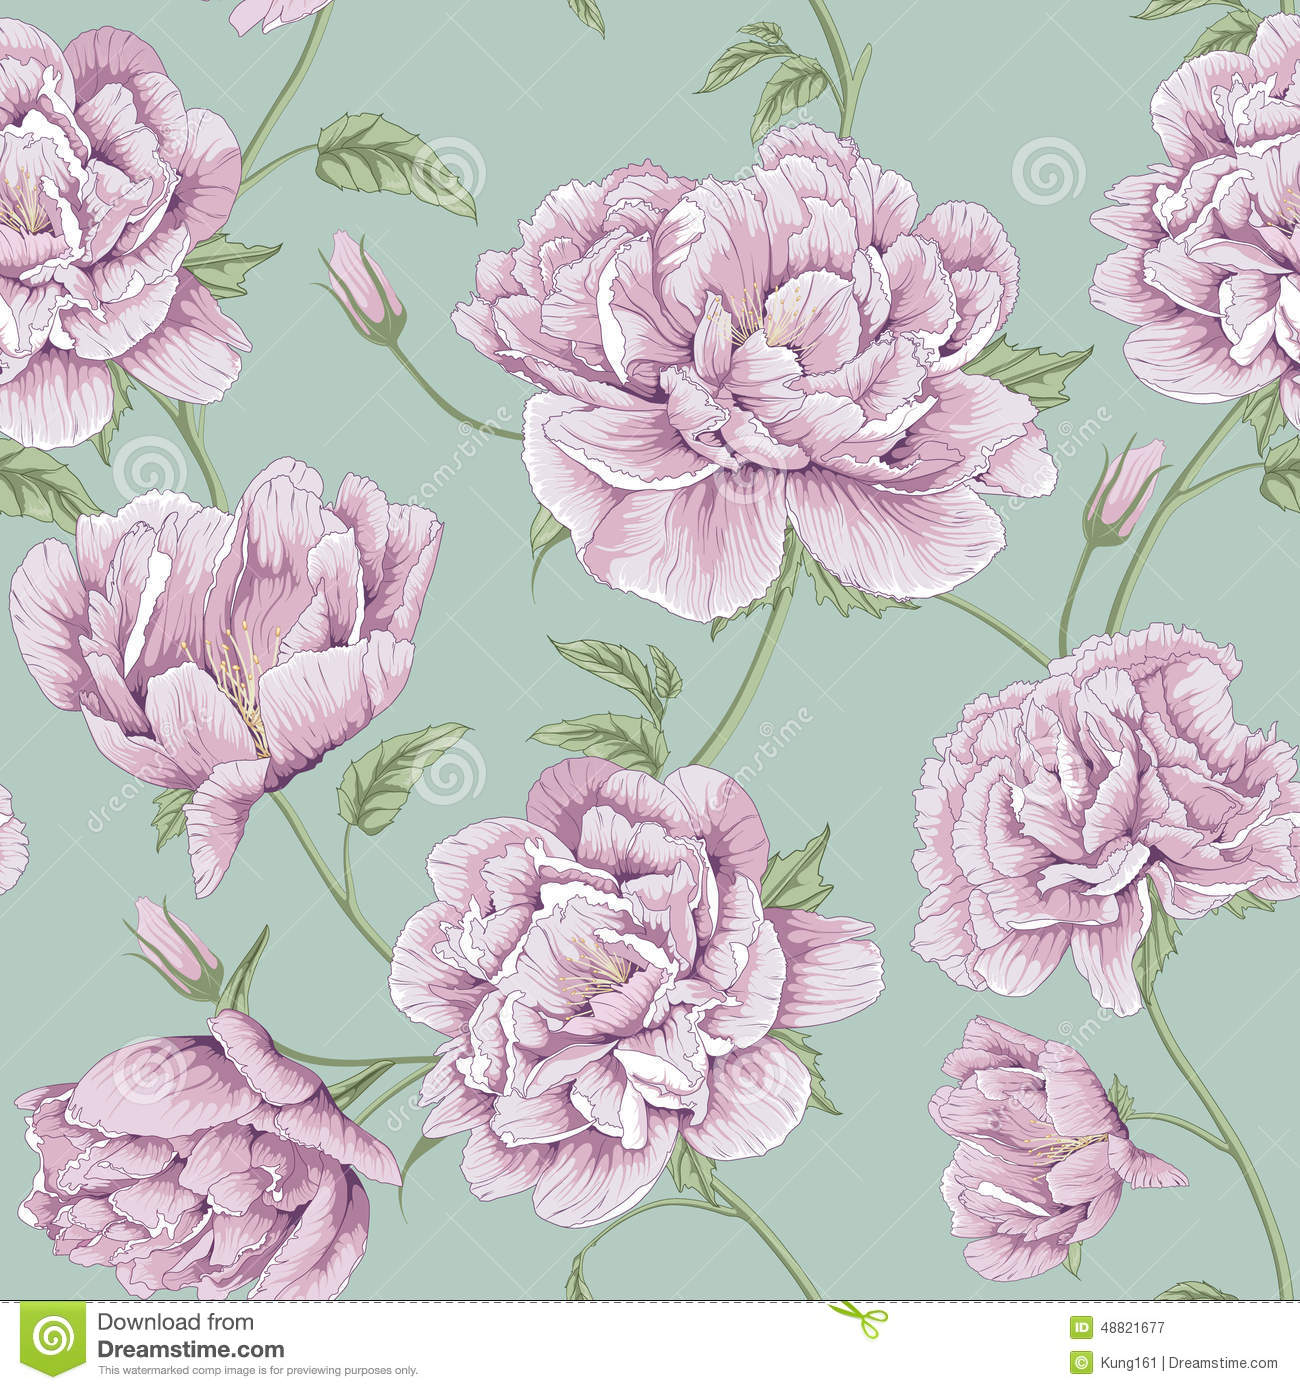 Peony flower isolated on white stock vector 368014568 shutterstock - Pattern Peony Flower Illustration Stock Vector Image 1300x1390